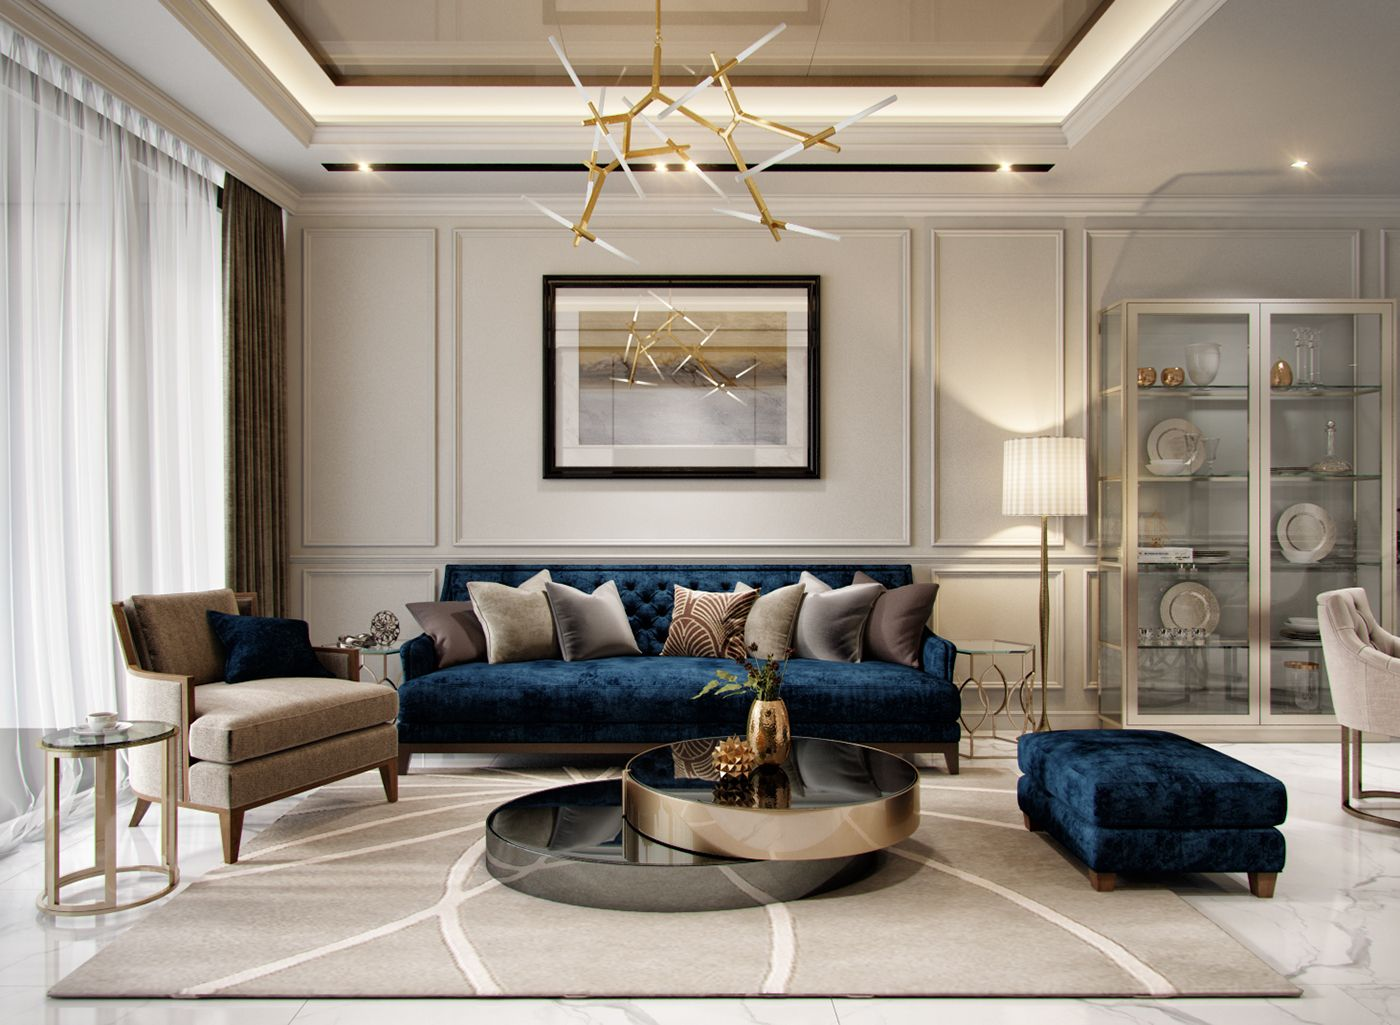 Living Room Luxury Interior Design Luxury Interior Luxury Interior Design Living Room Interior Design Living Room